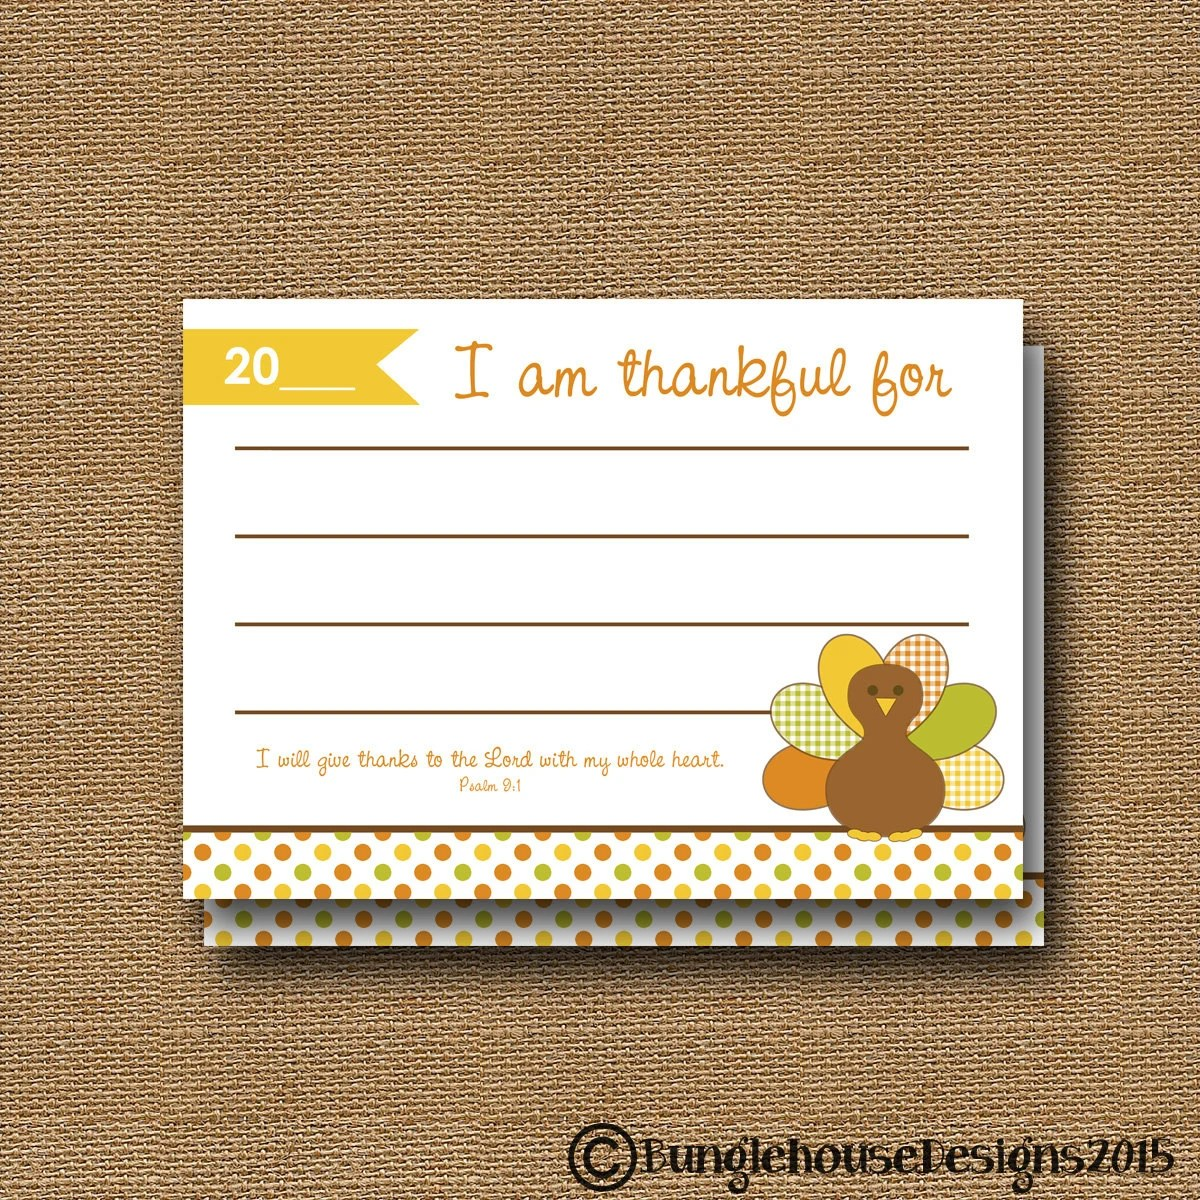 Printable Gratitude Cards Thanksgiving Thankful List I Am Etsy